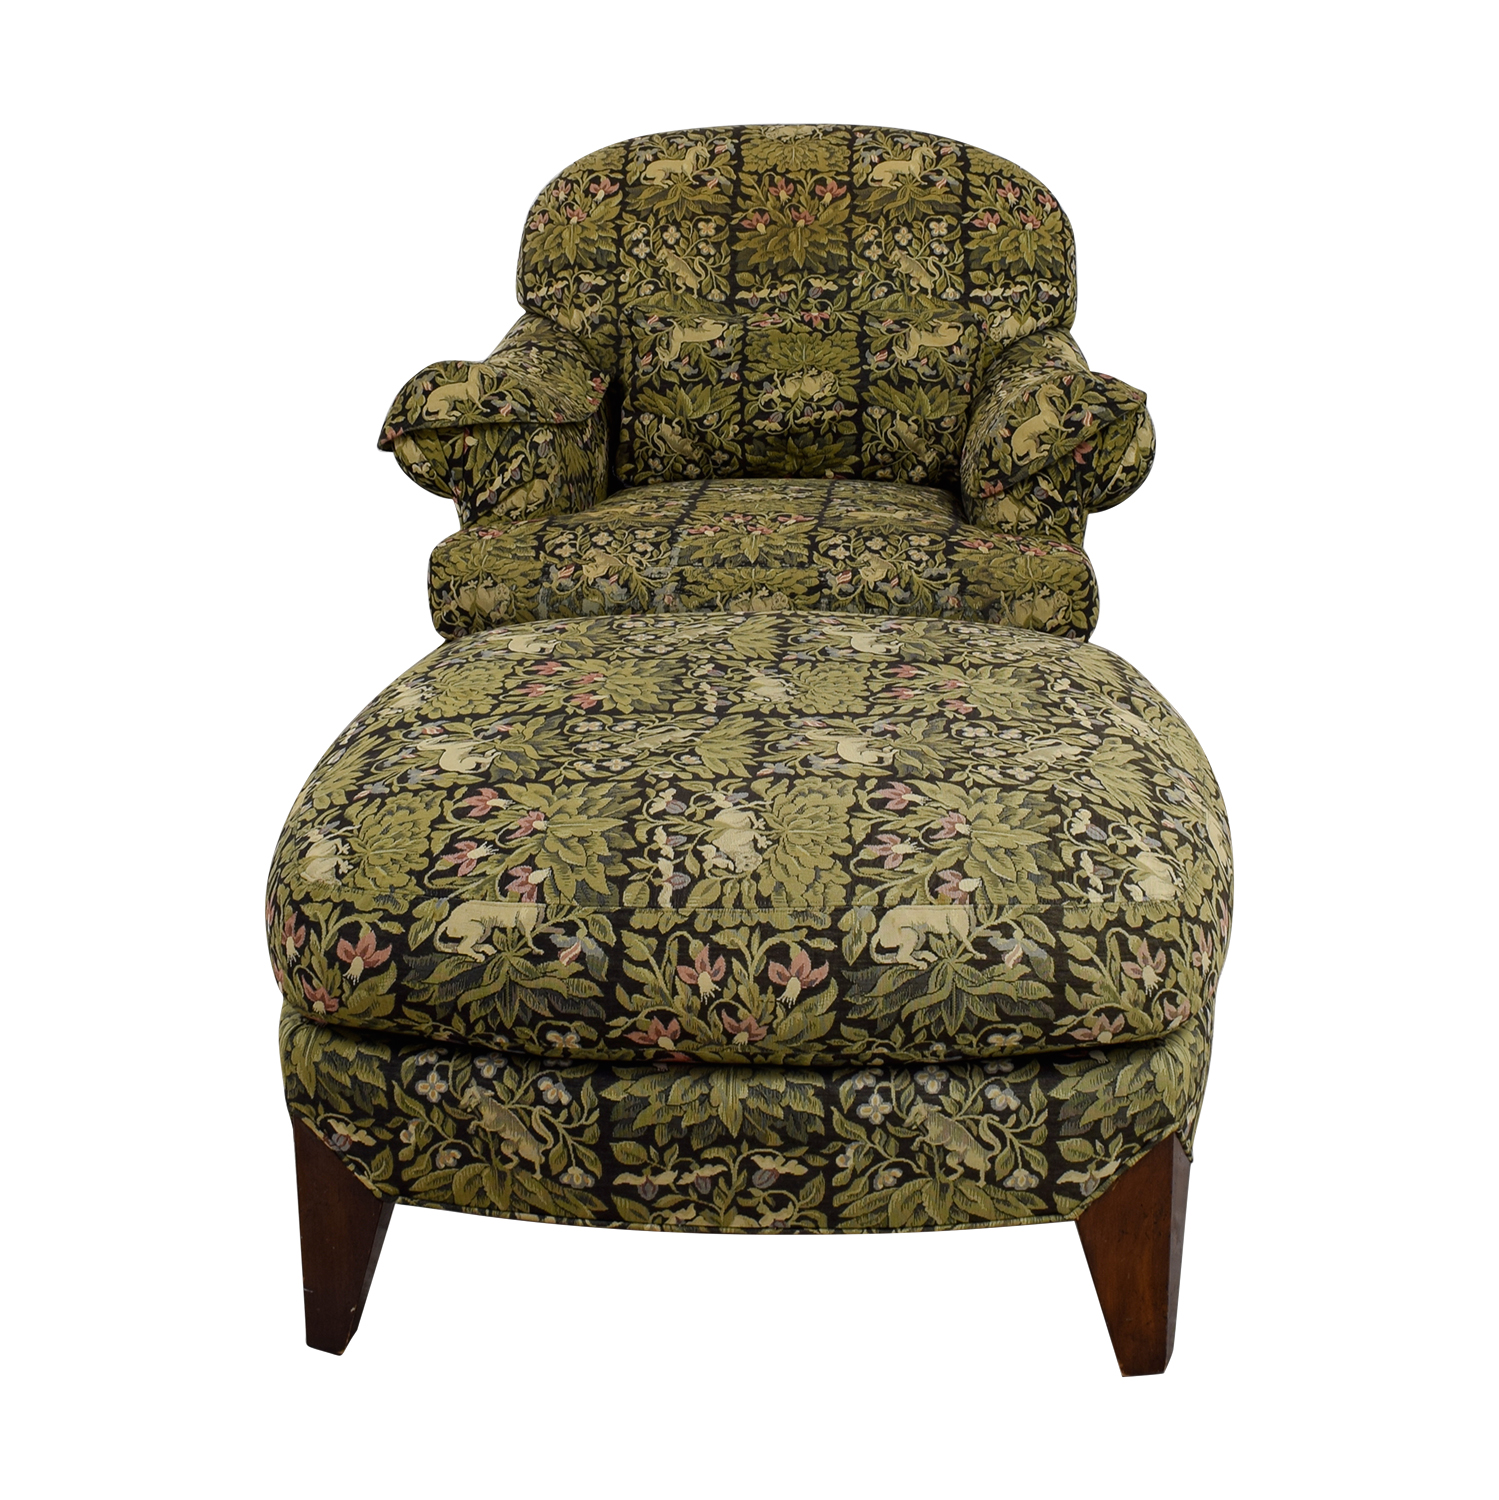 Henredon Henredon Upholstered Floral Chair and Ottoman Chairs